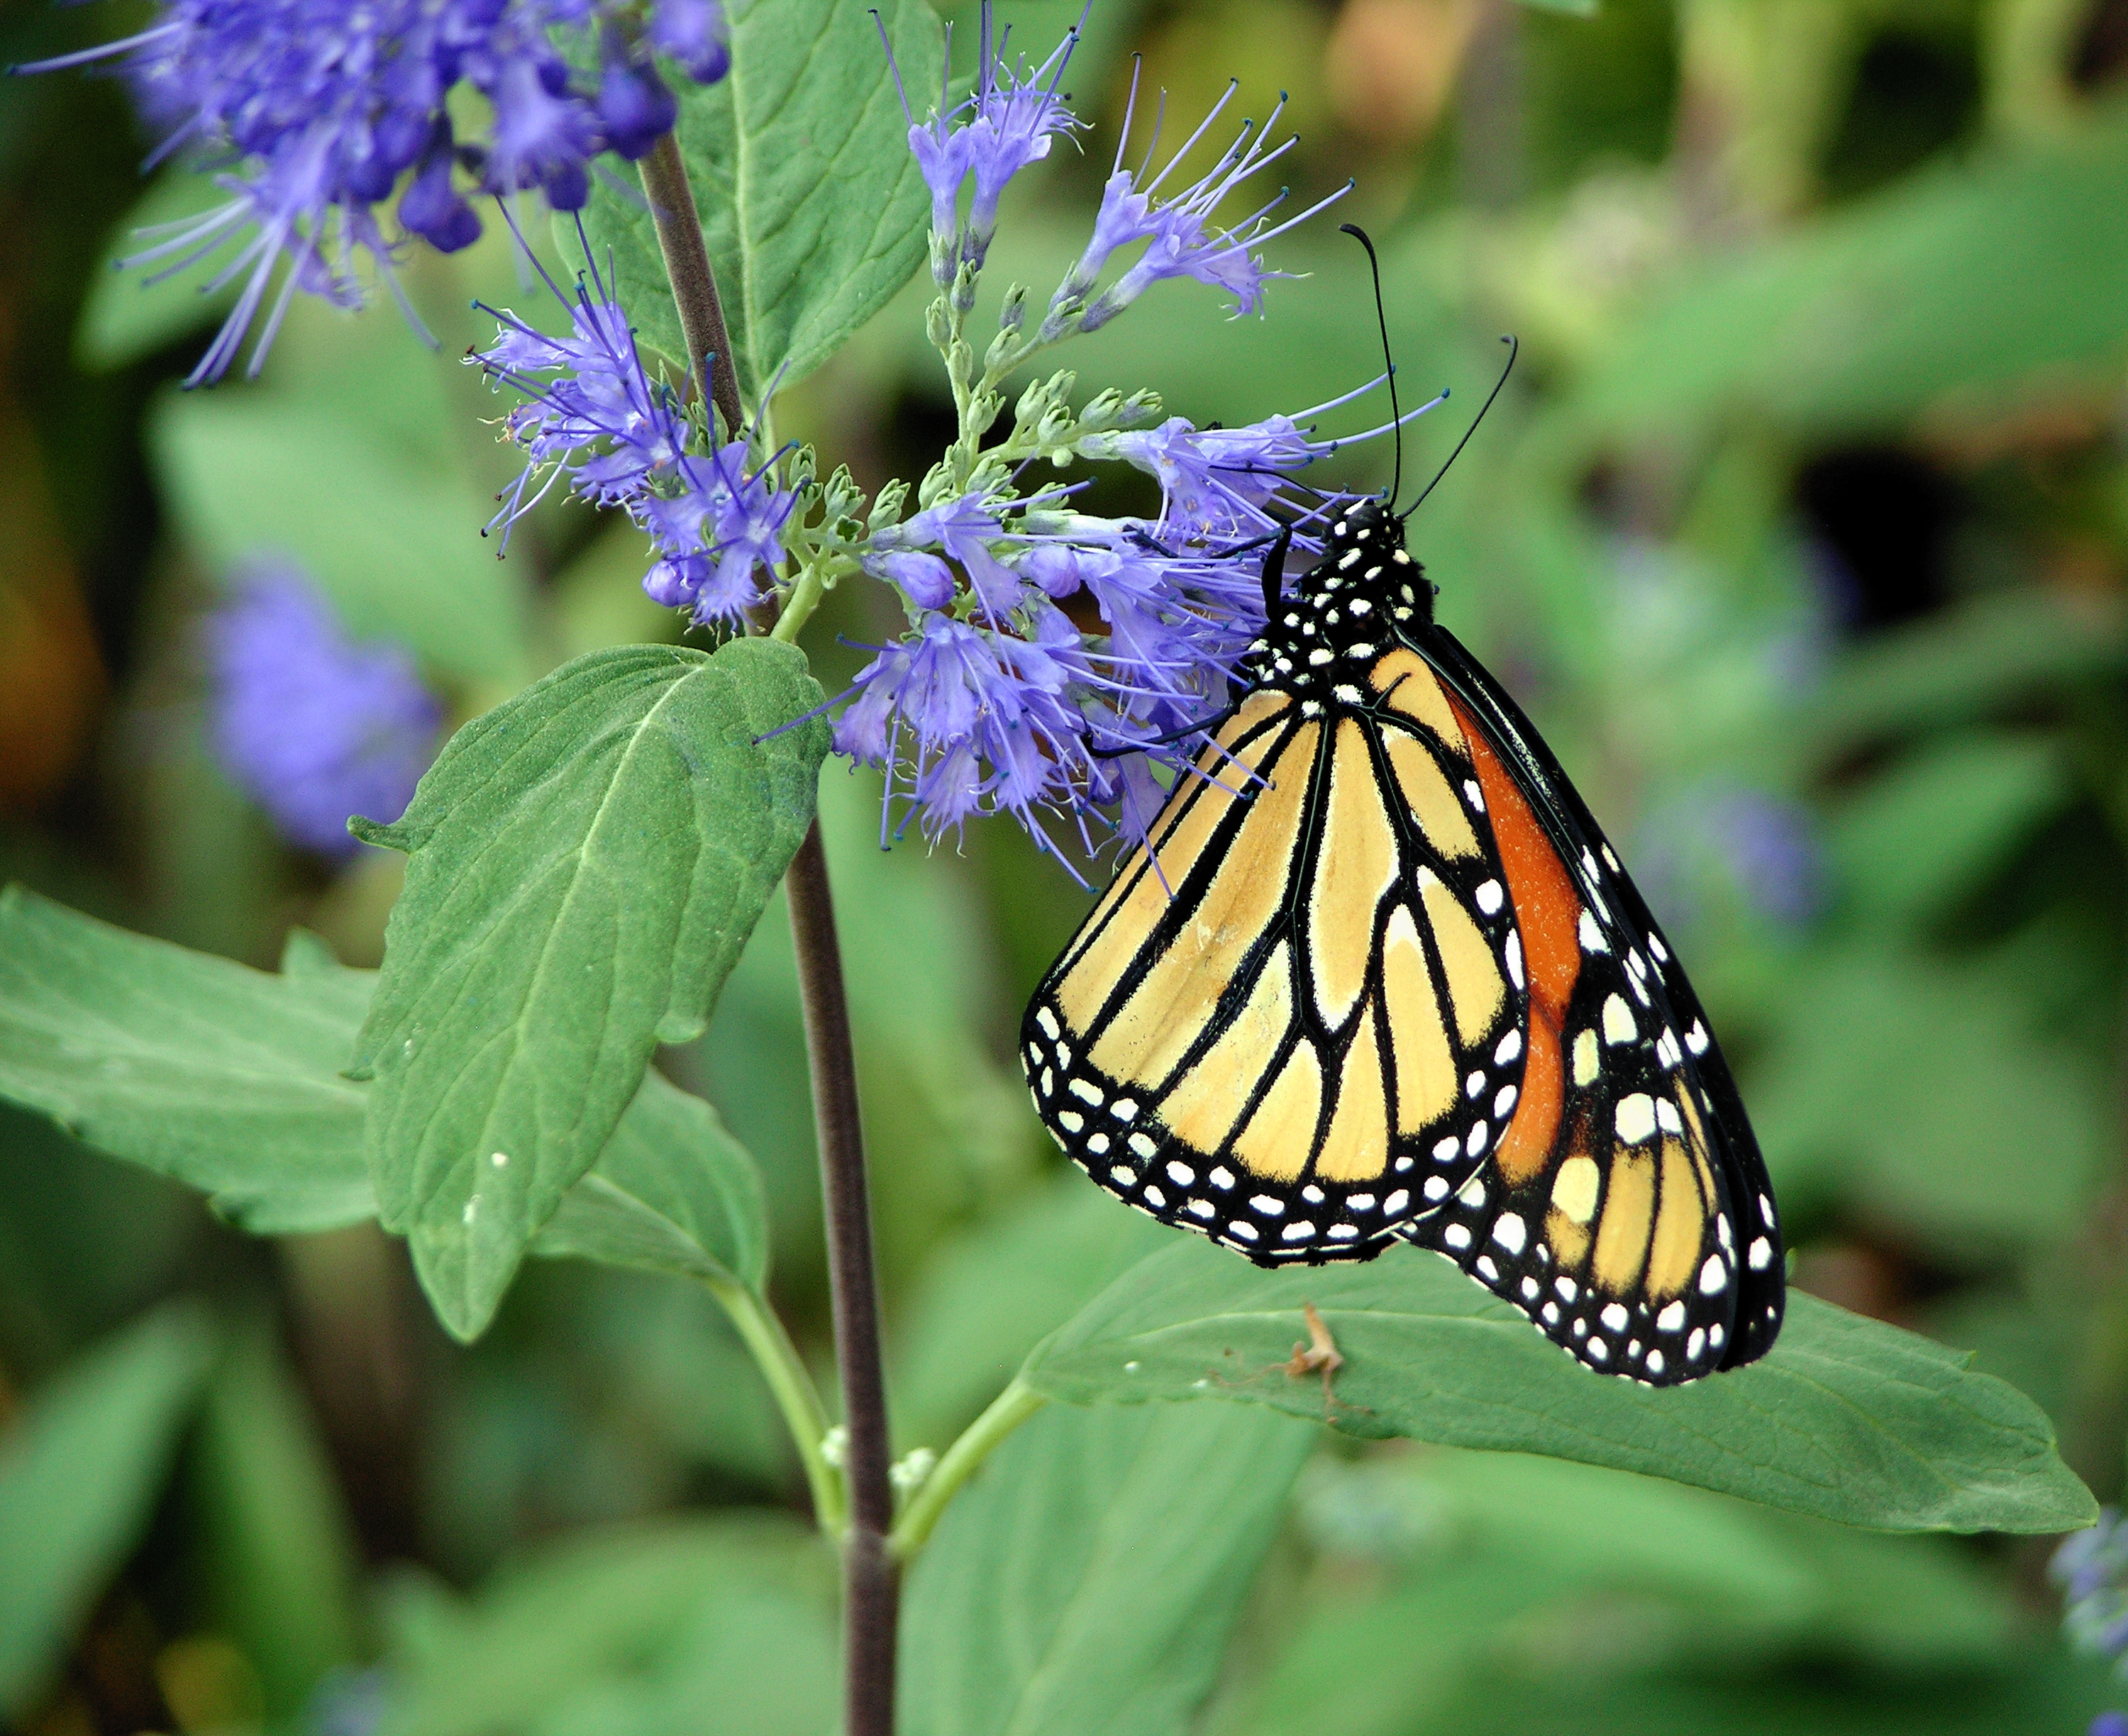 Purple butterfly pictures on flowers for Butterfly on flowers